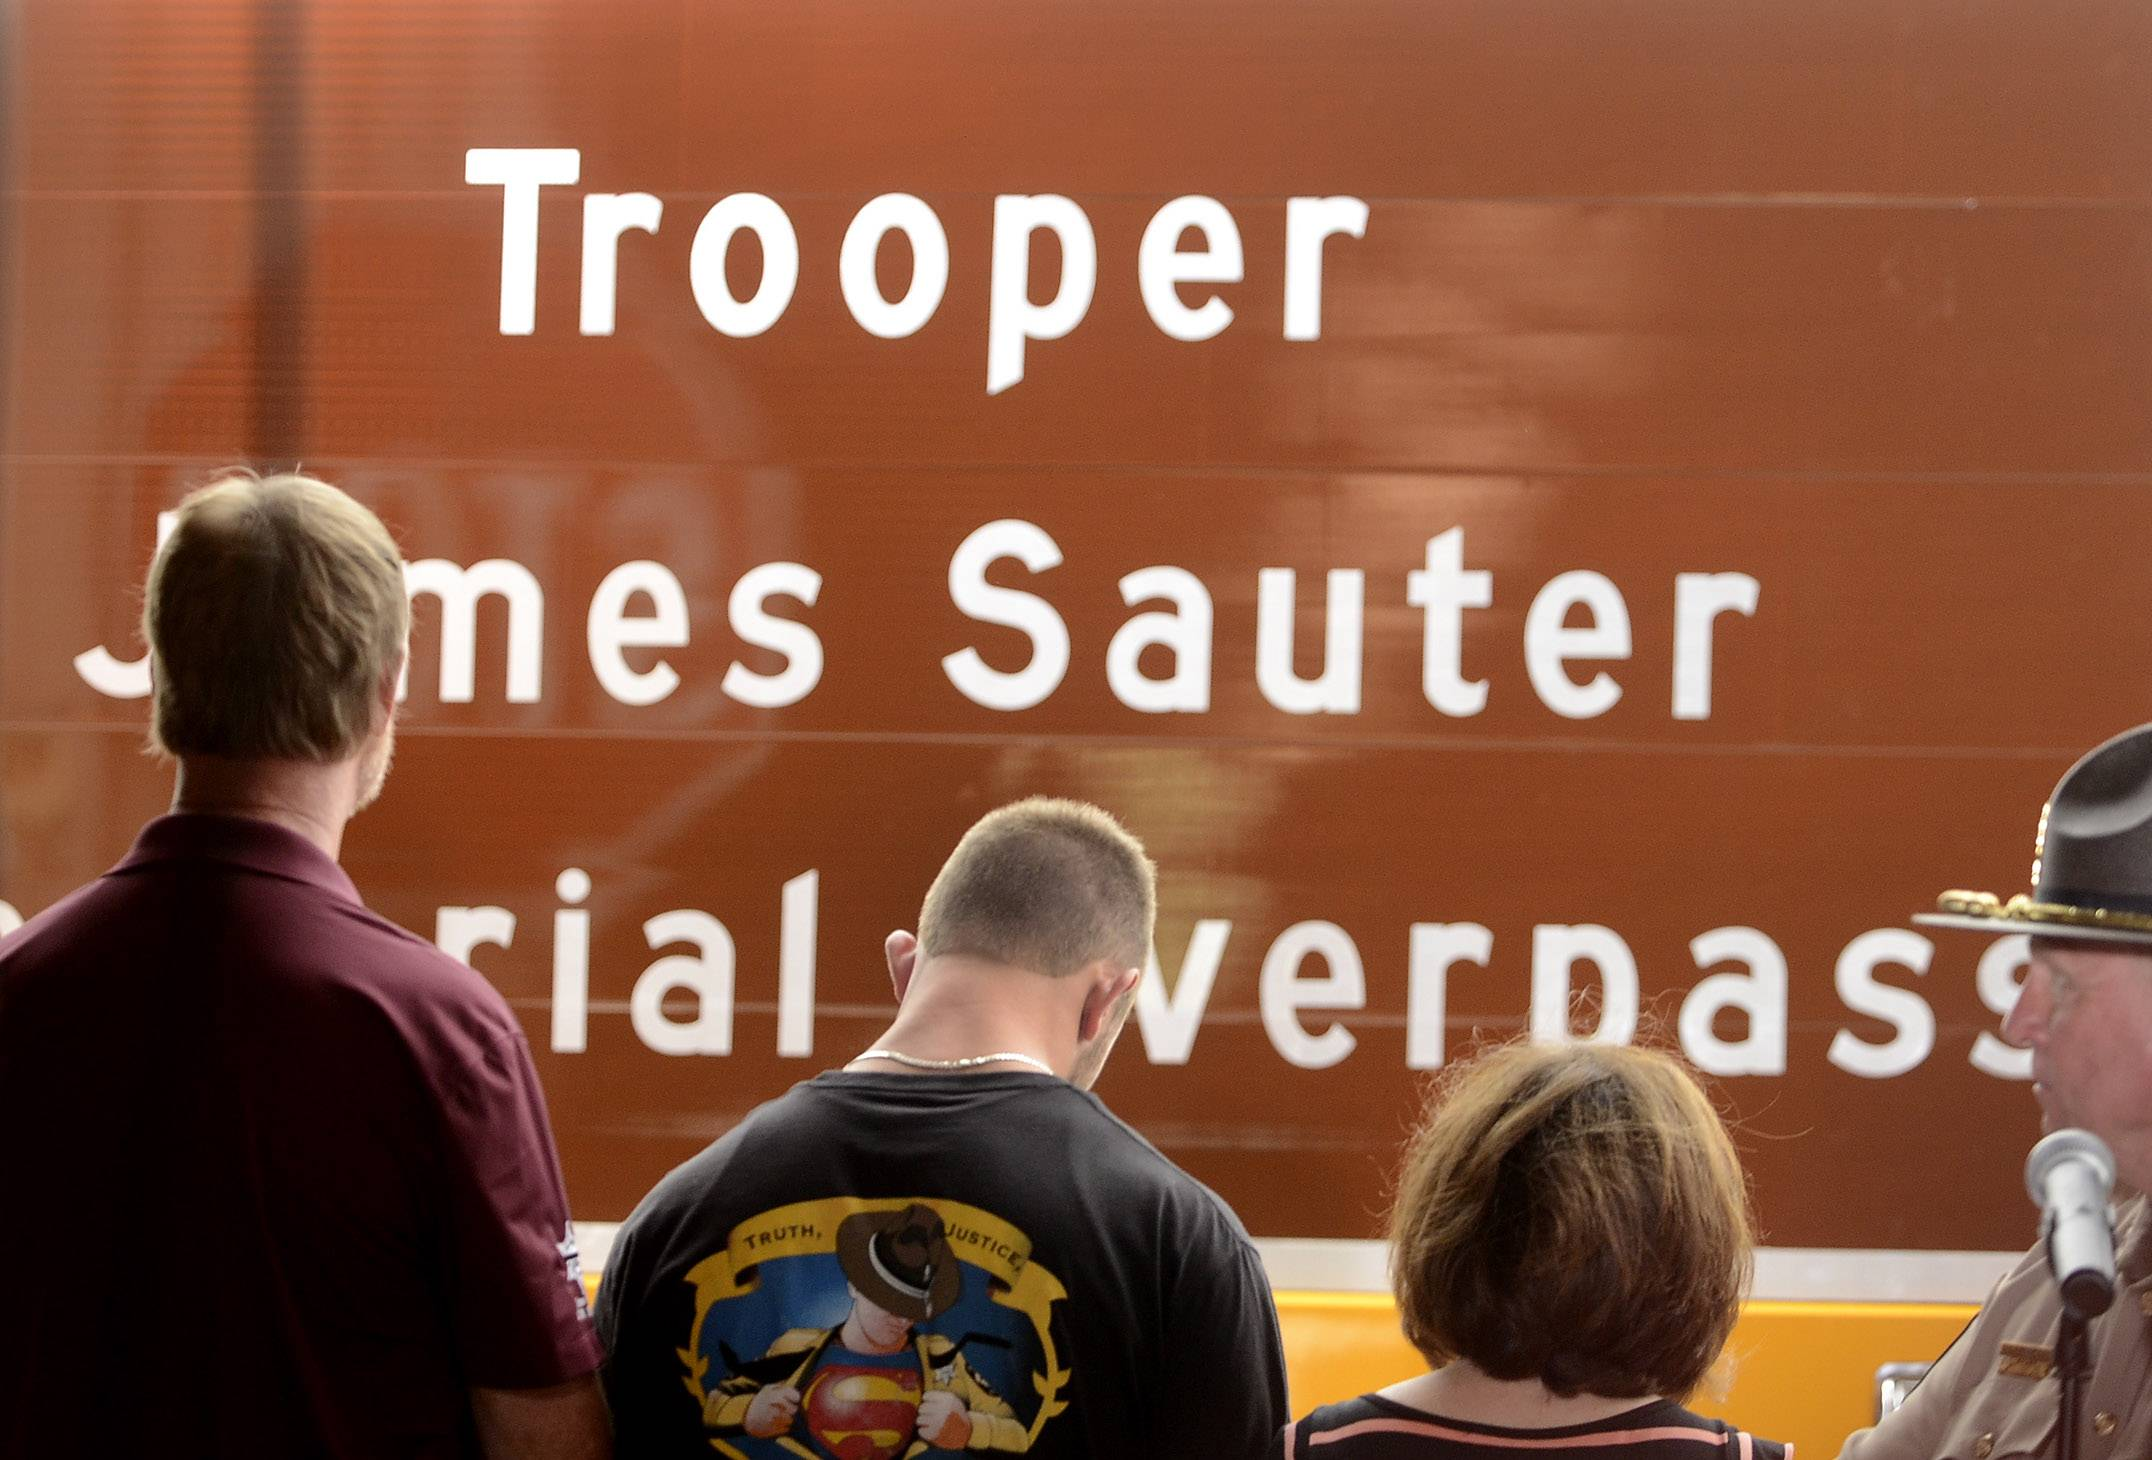 State troopers honor late colleague with truck safety campaign